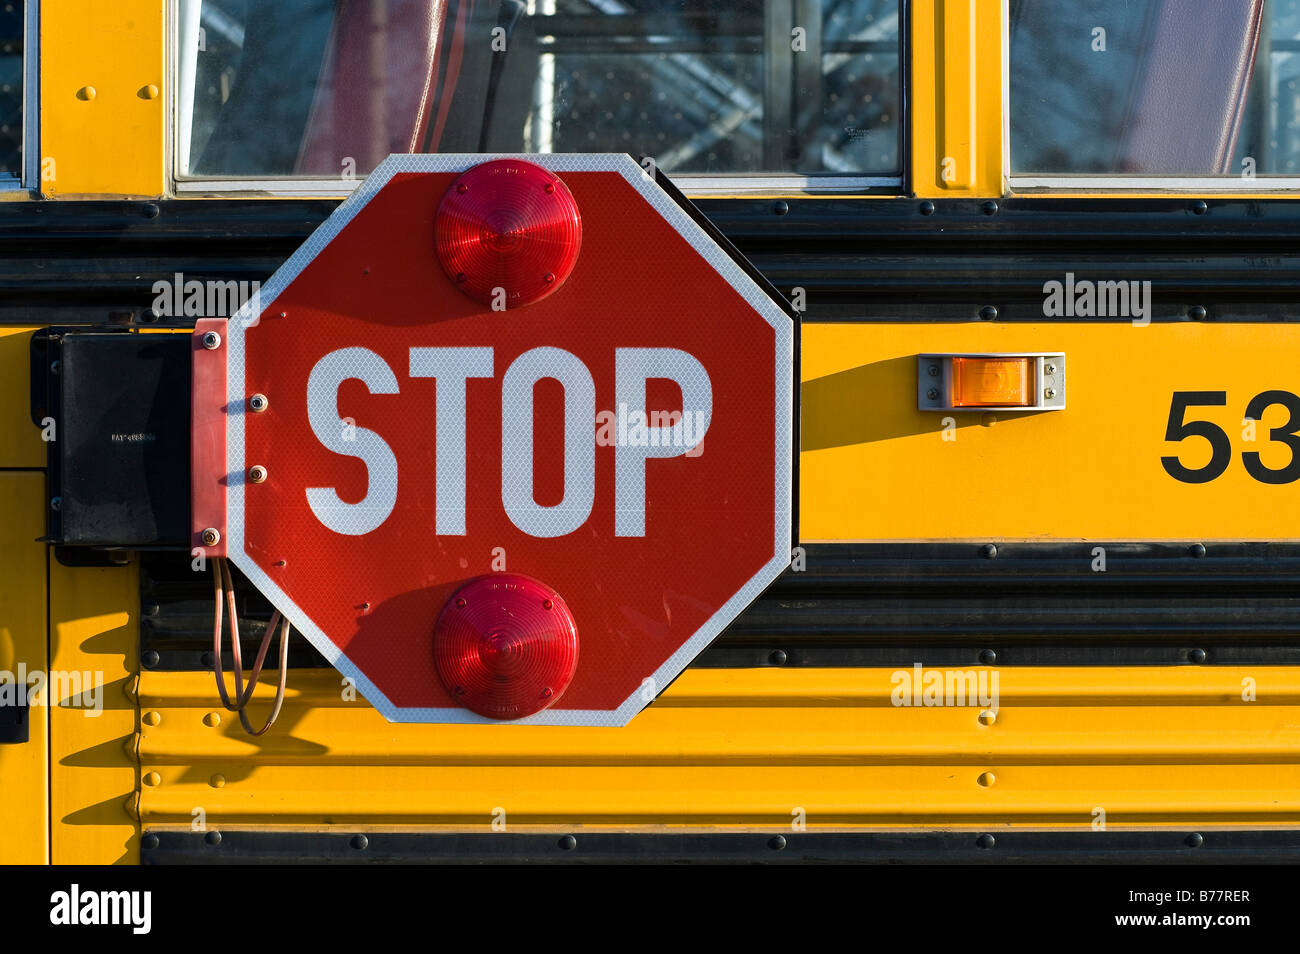 School bus with retracting safety stop sign - Stock Image